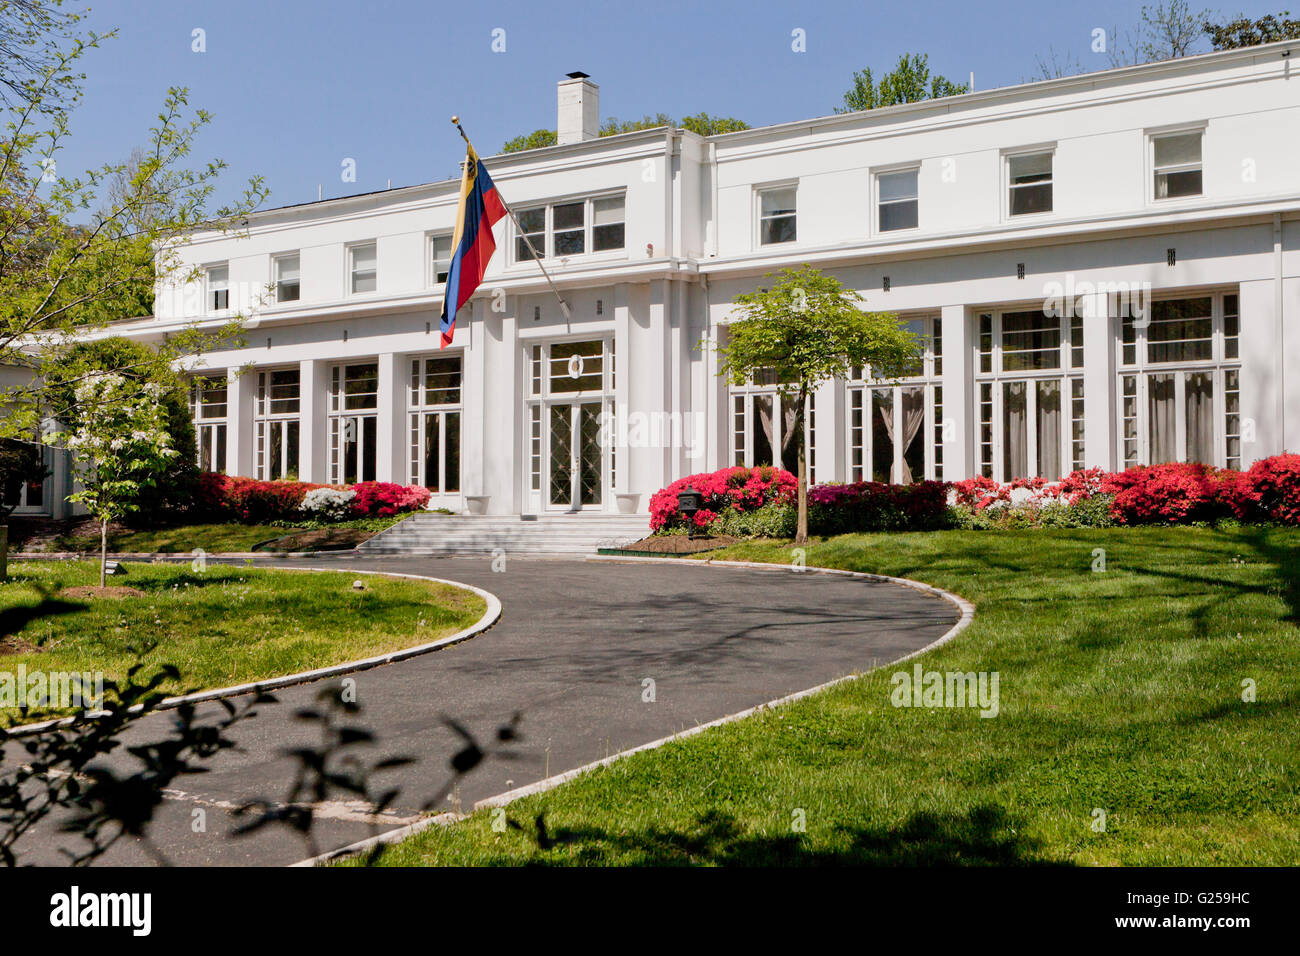 Embassy of Venezuela, Bolivarian Hall - Washington, DC USA - Stock Image